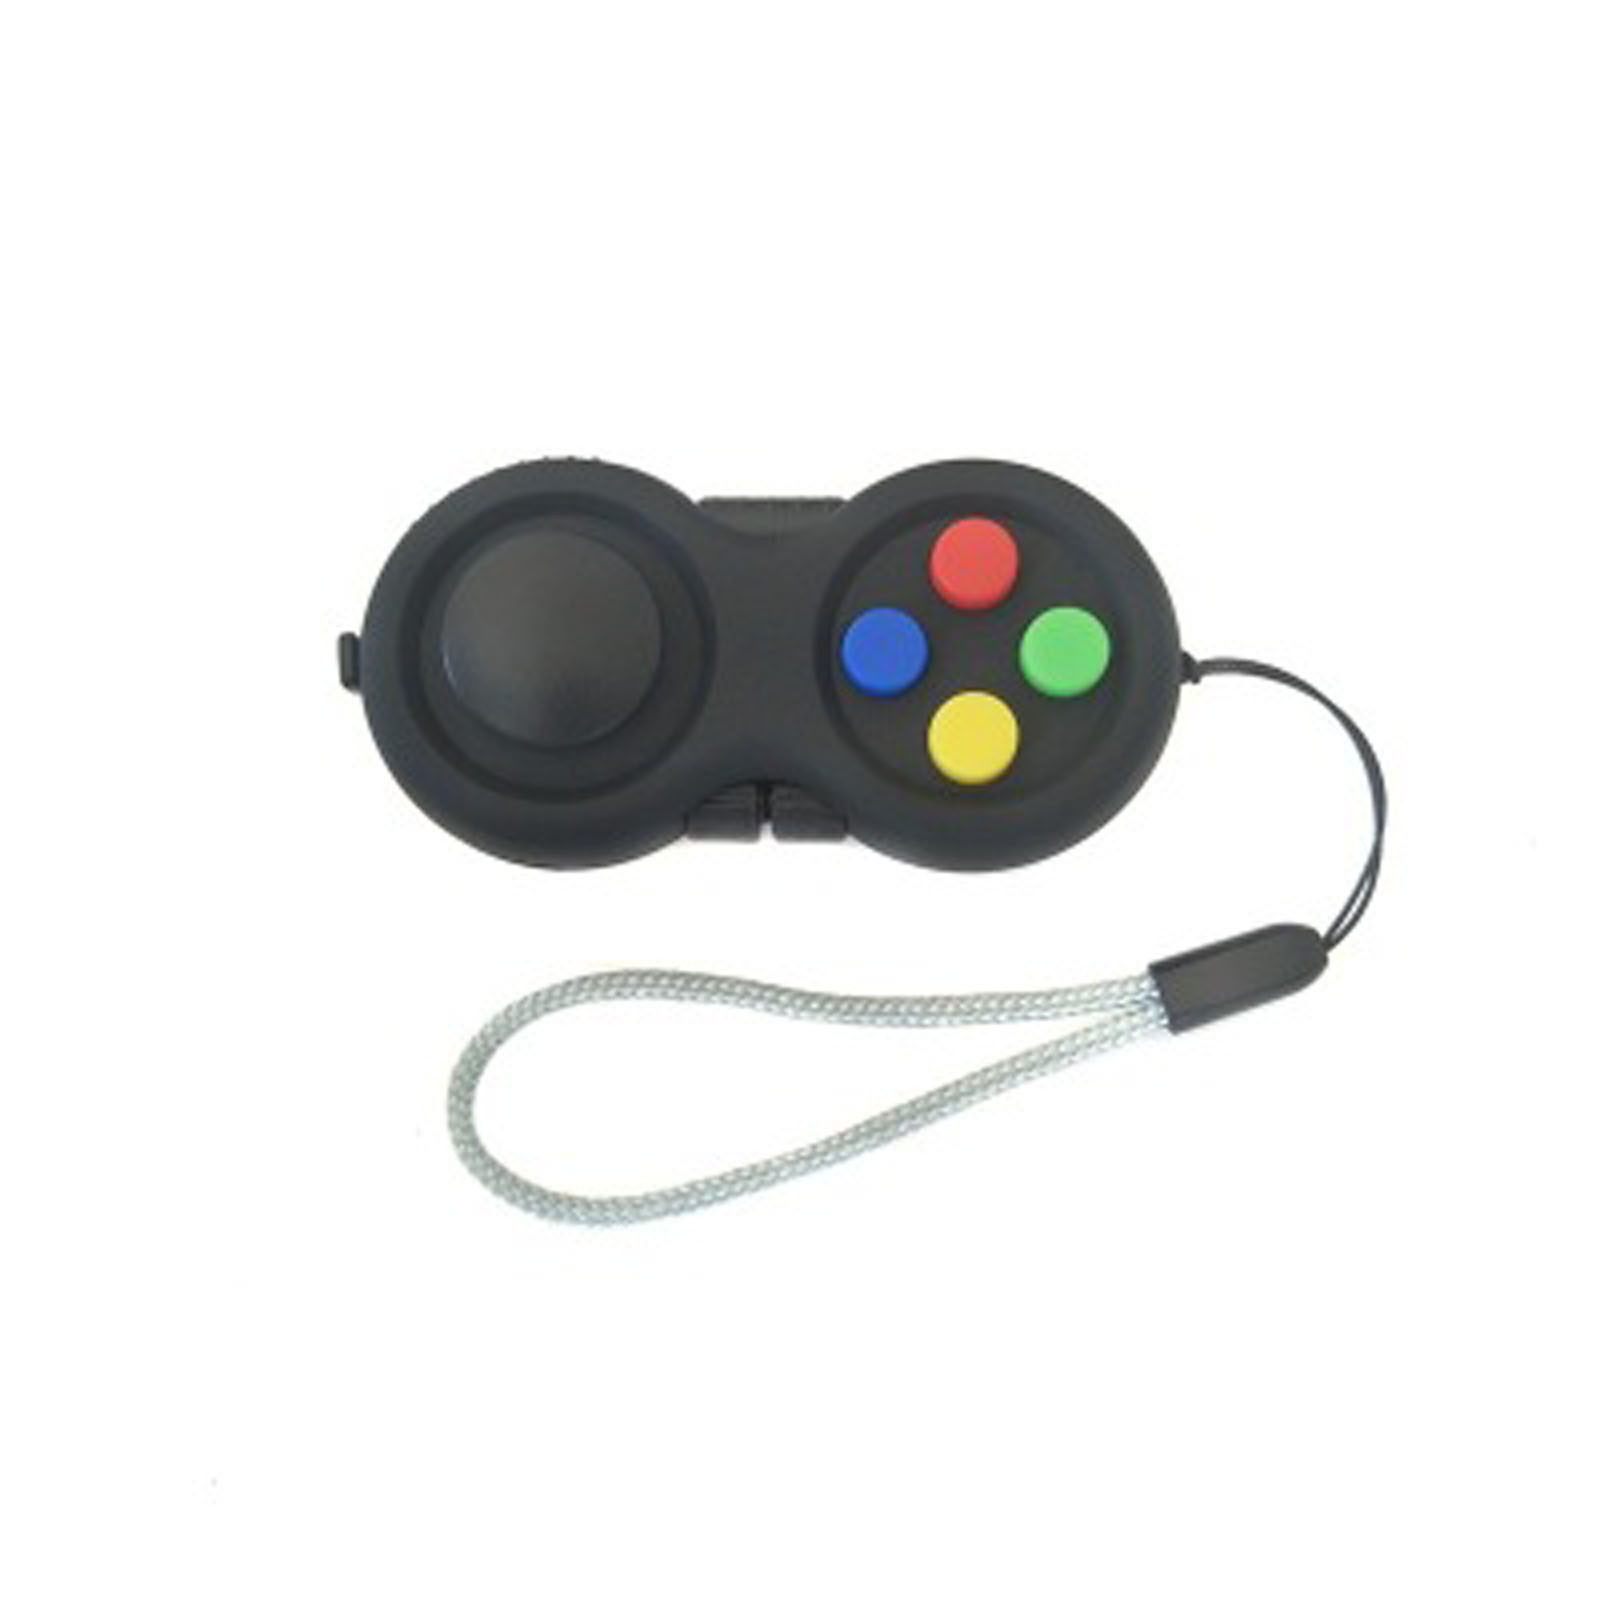 Gamepad Figet Toys Juguetes Decompression Stress Anxiety Children Adult for Is Used And img2